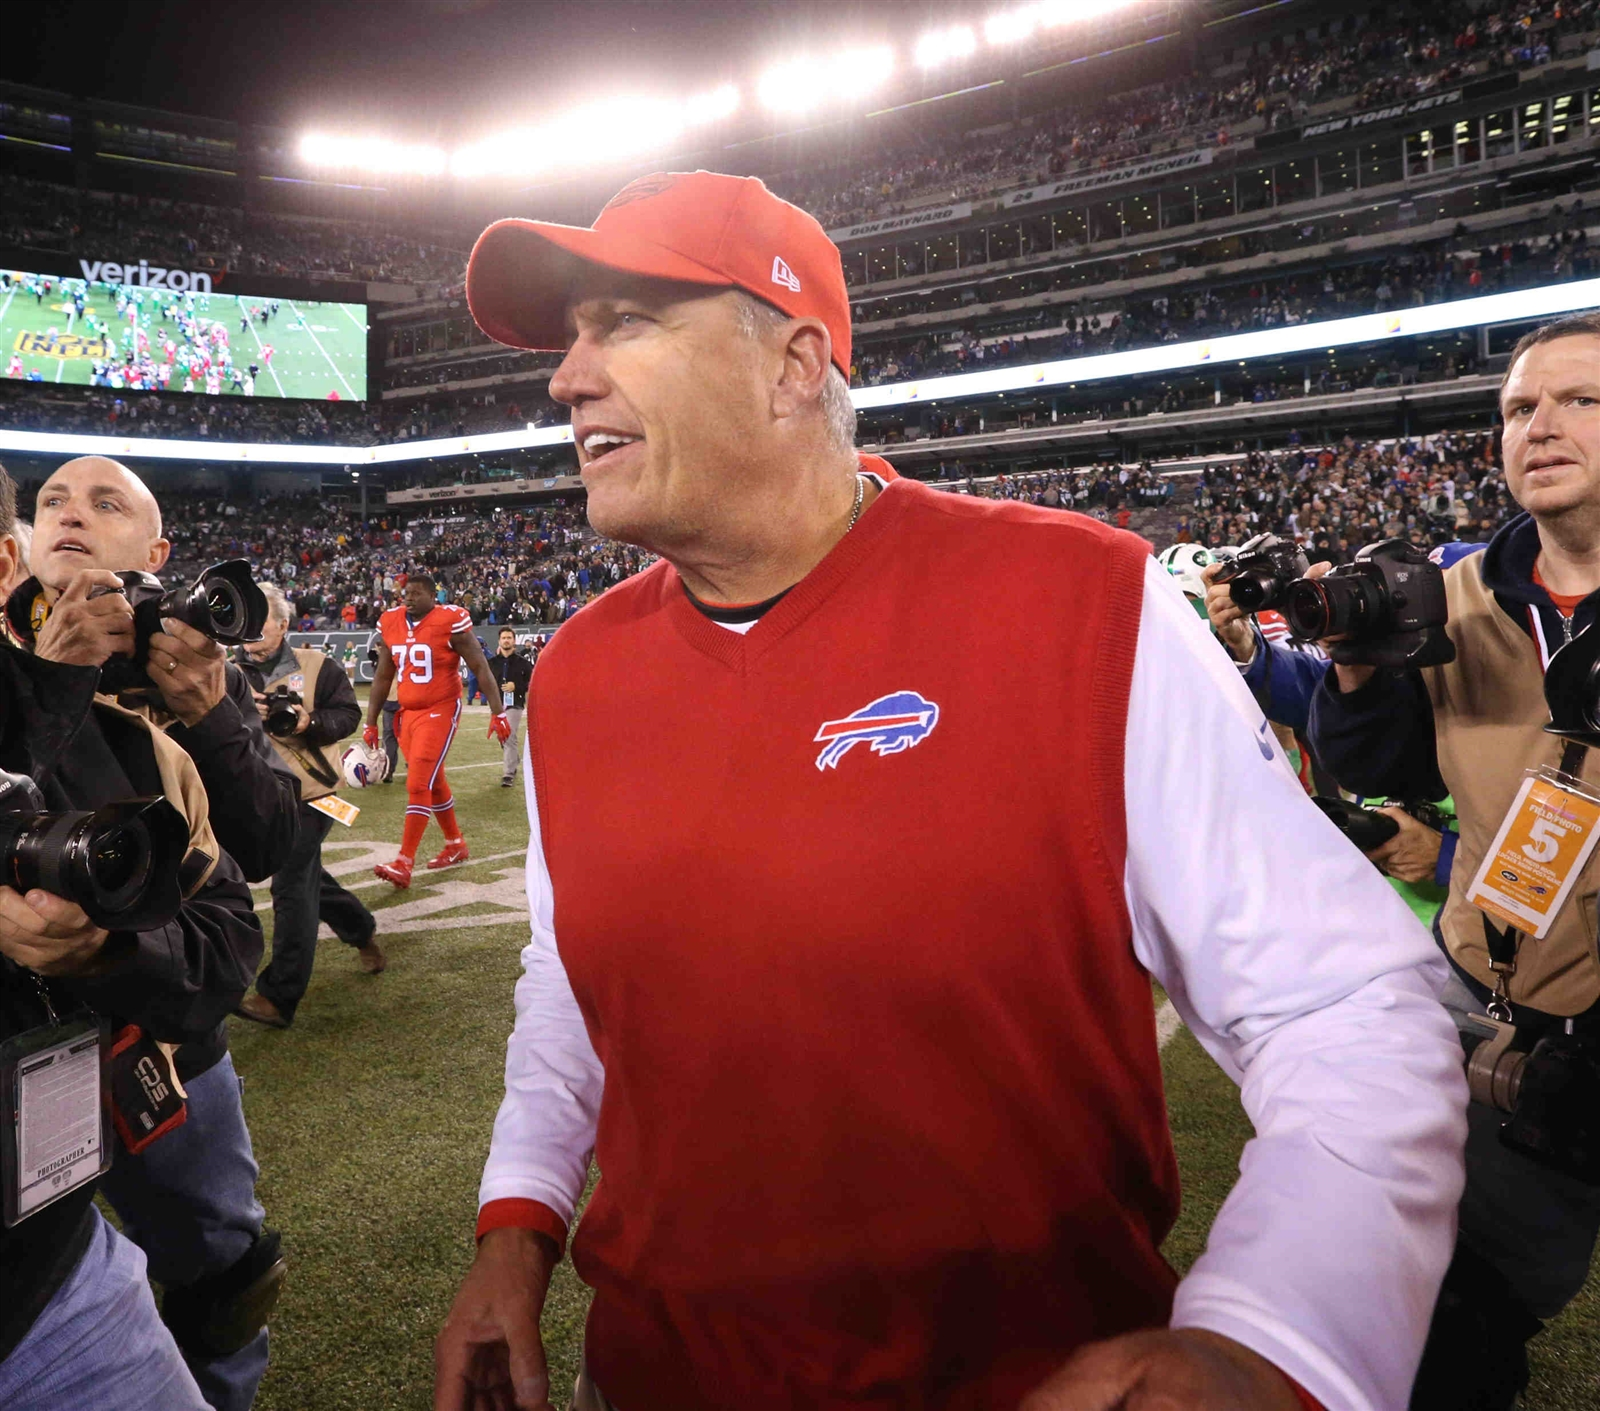 Rex Ryan was fired up to win at his former team earlier this season. (James P. McCoy/Buffalo News)